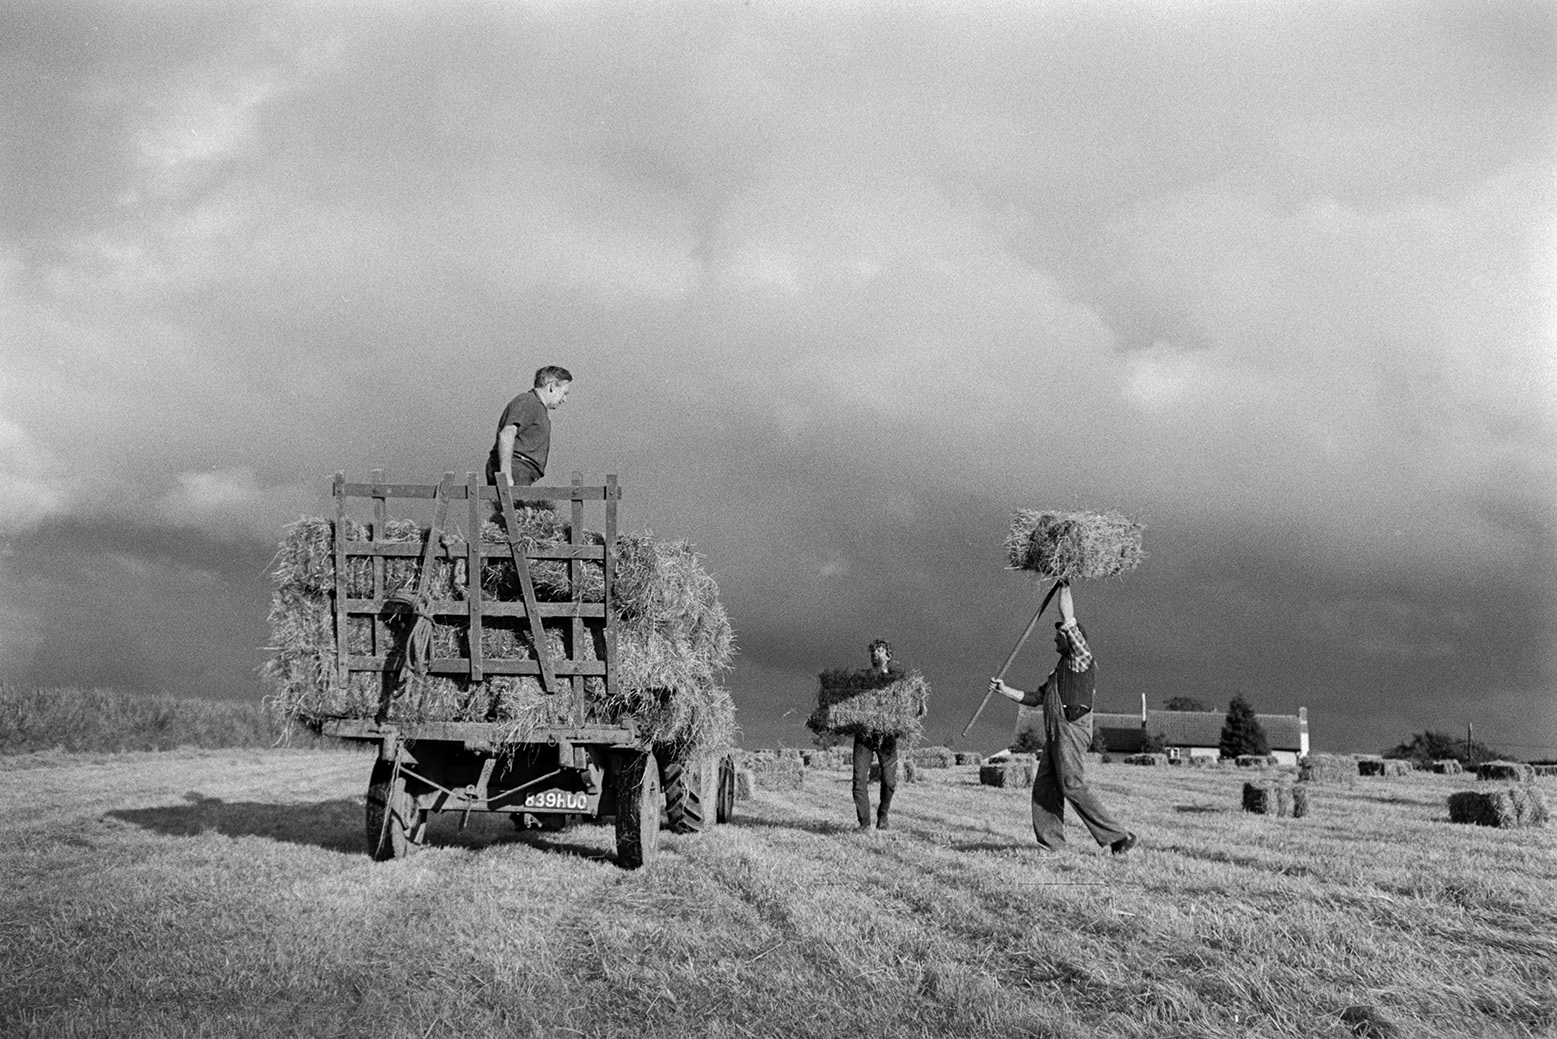 Men loading hay bales onto a trailer using pitchforks, in a sunny field at Mill Road Farm, Beaford.